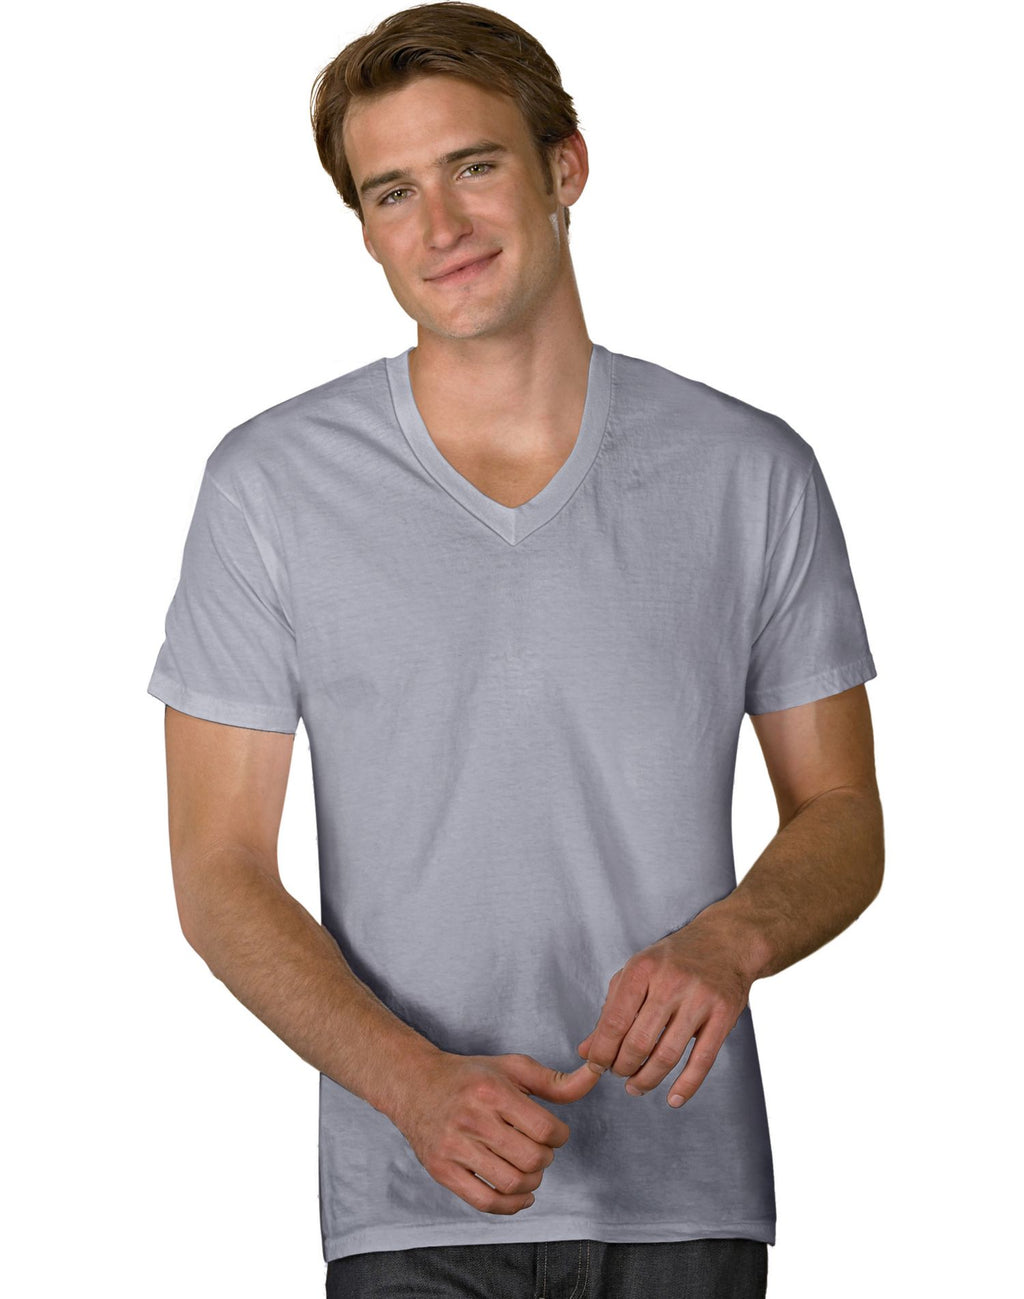 Hanes 4.2 oz NANO-T Originals V-Neck T-Shirt